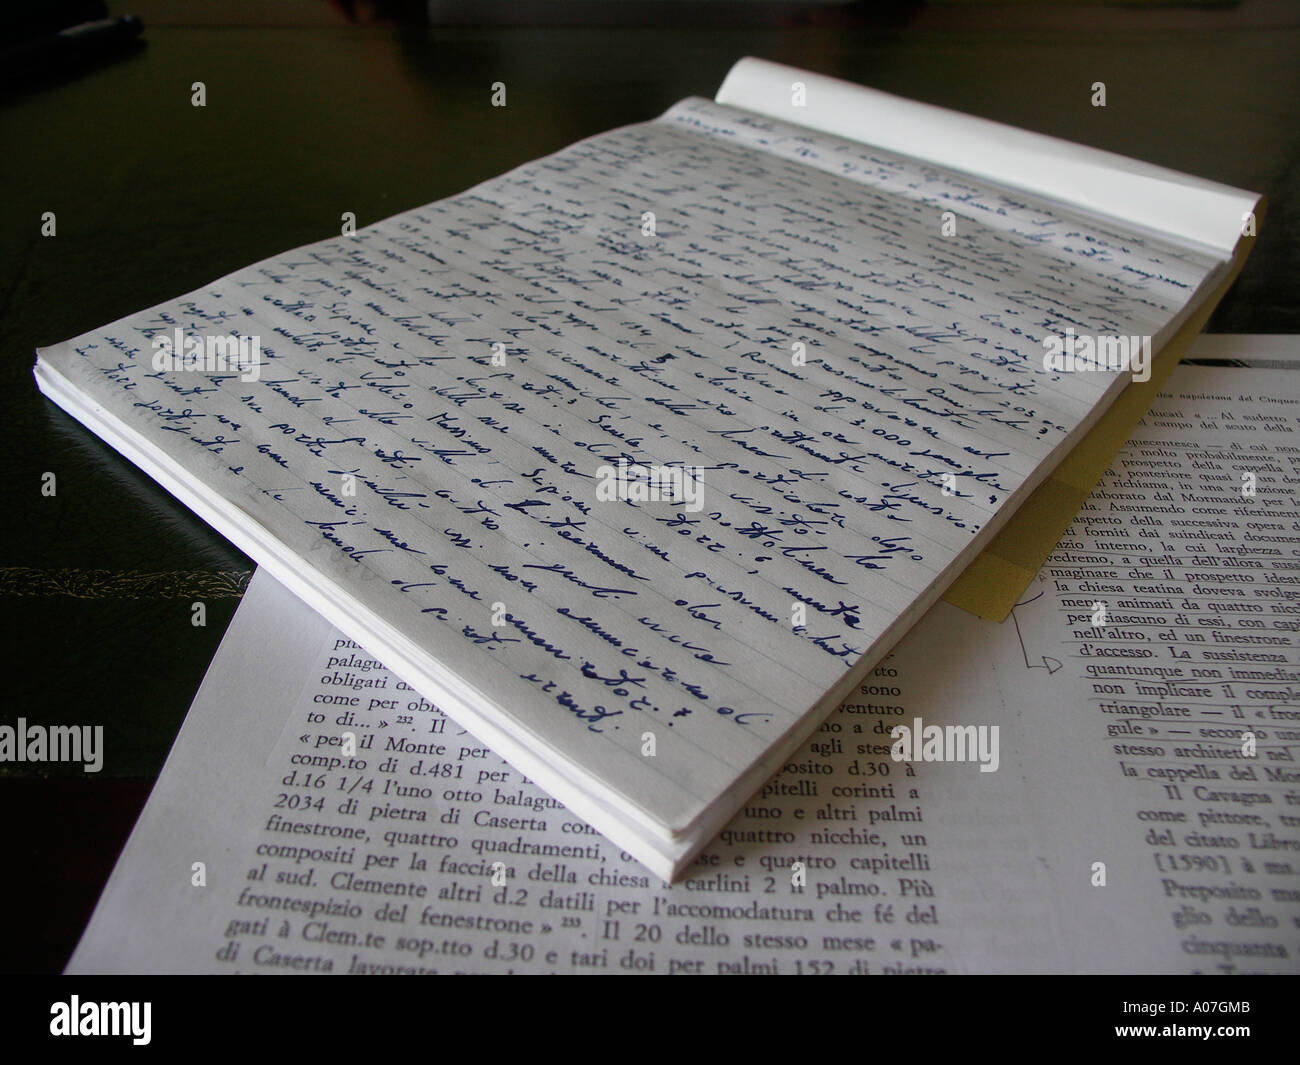 Notes handwriting on a desktop - Stock Image